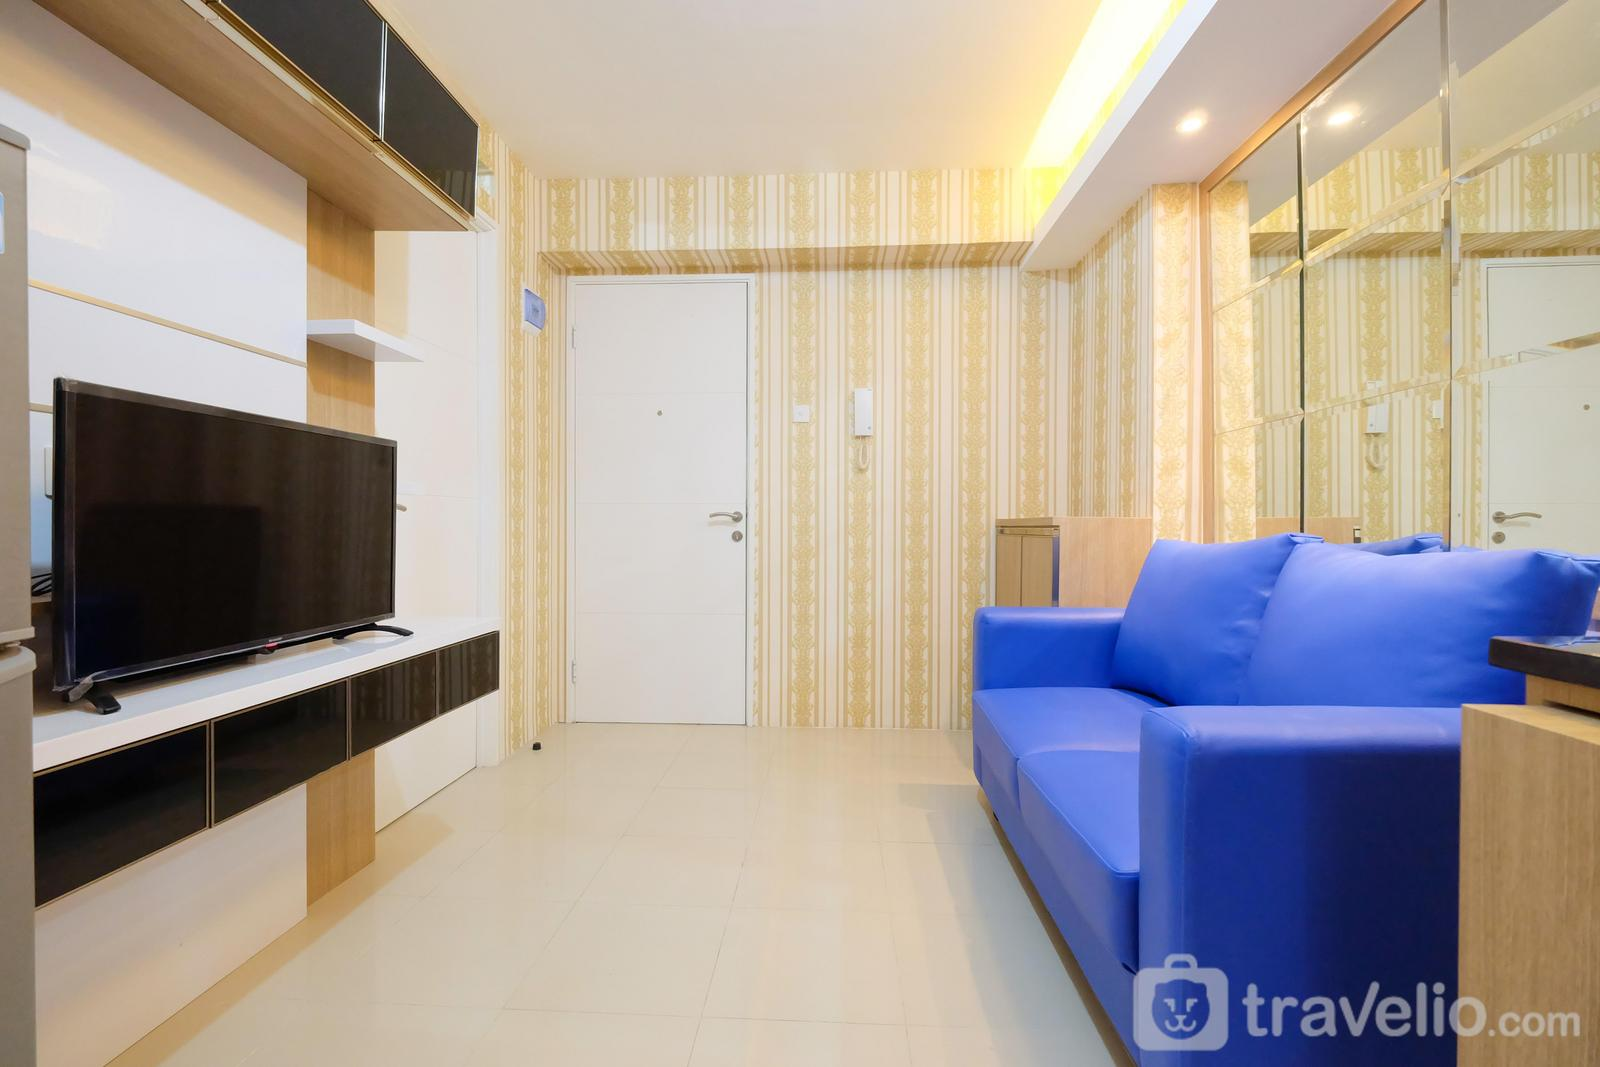 Bassura City Cipinang - Cozy & Affordable 2BR Bassura City Apartment by Travelio